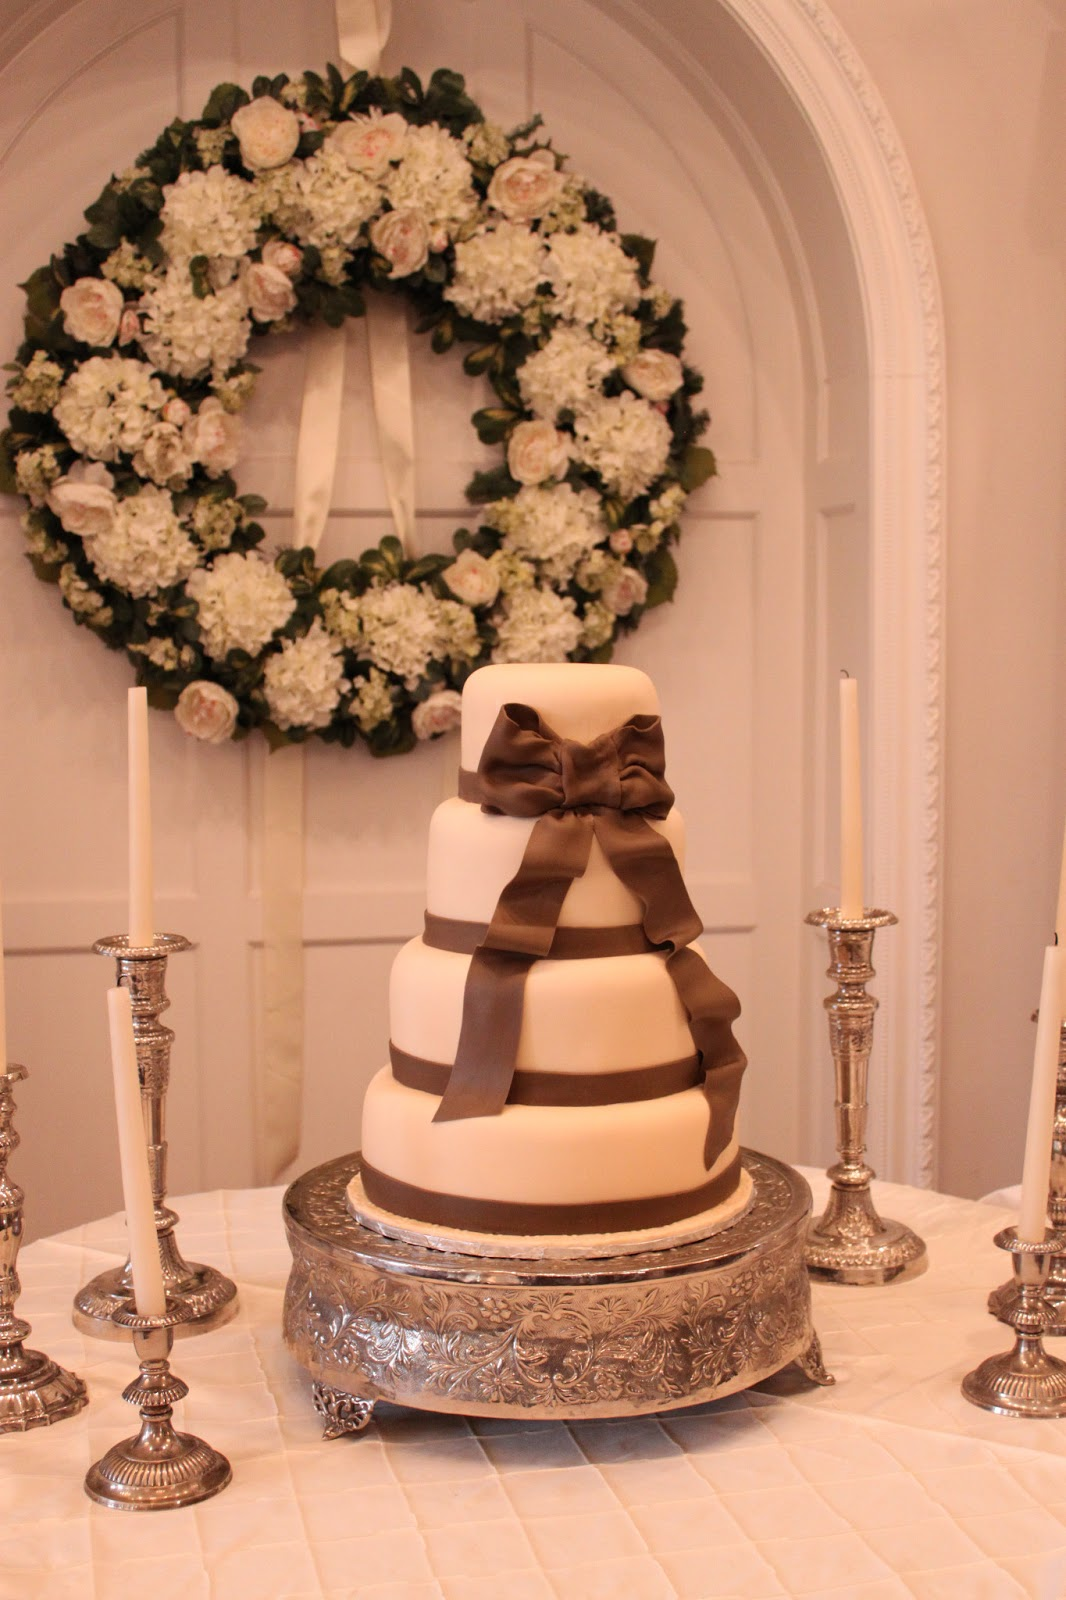 Layers of Love Elegant Bow wedding cake